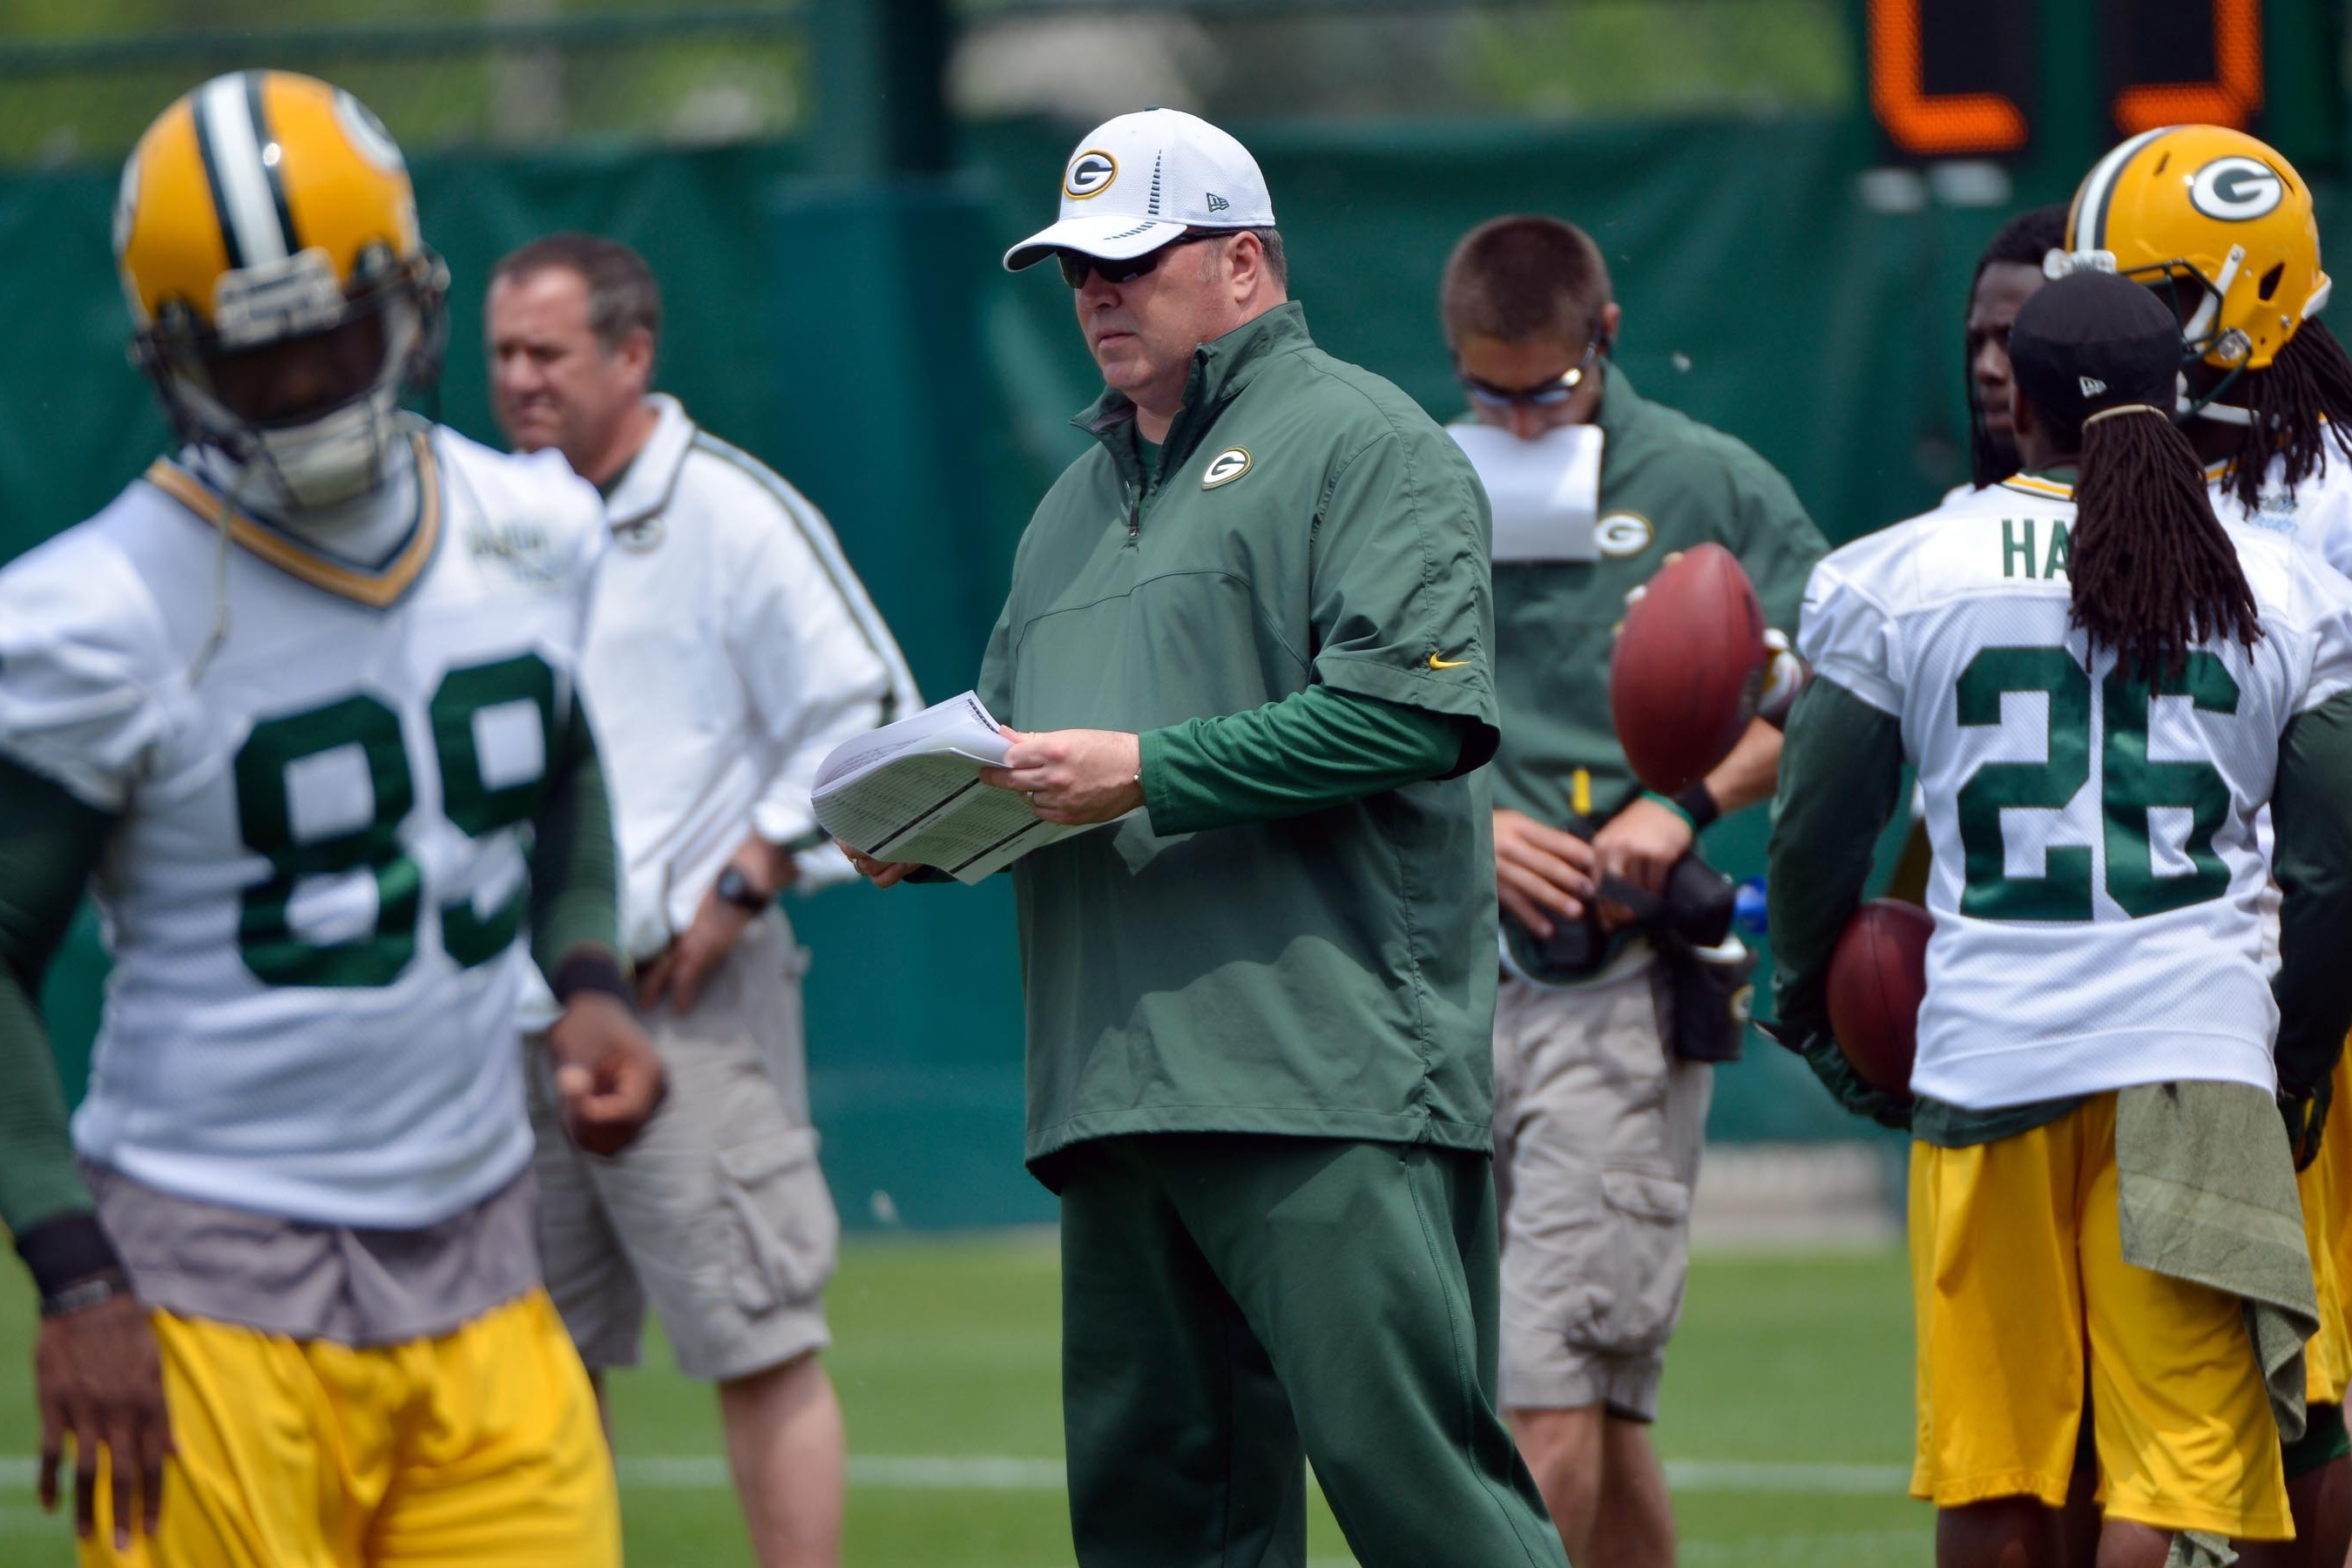 Green Bay Packers Roster 2013 Latest Cuts Depth Charts And Analysis Bleacher Report Latest News Videos And Highlights